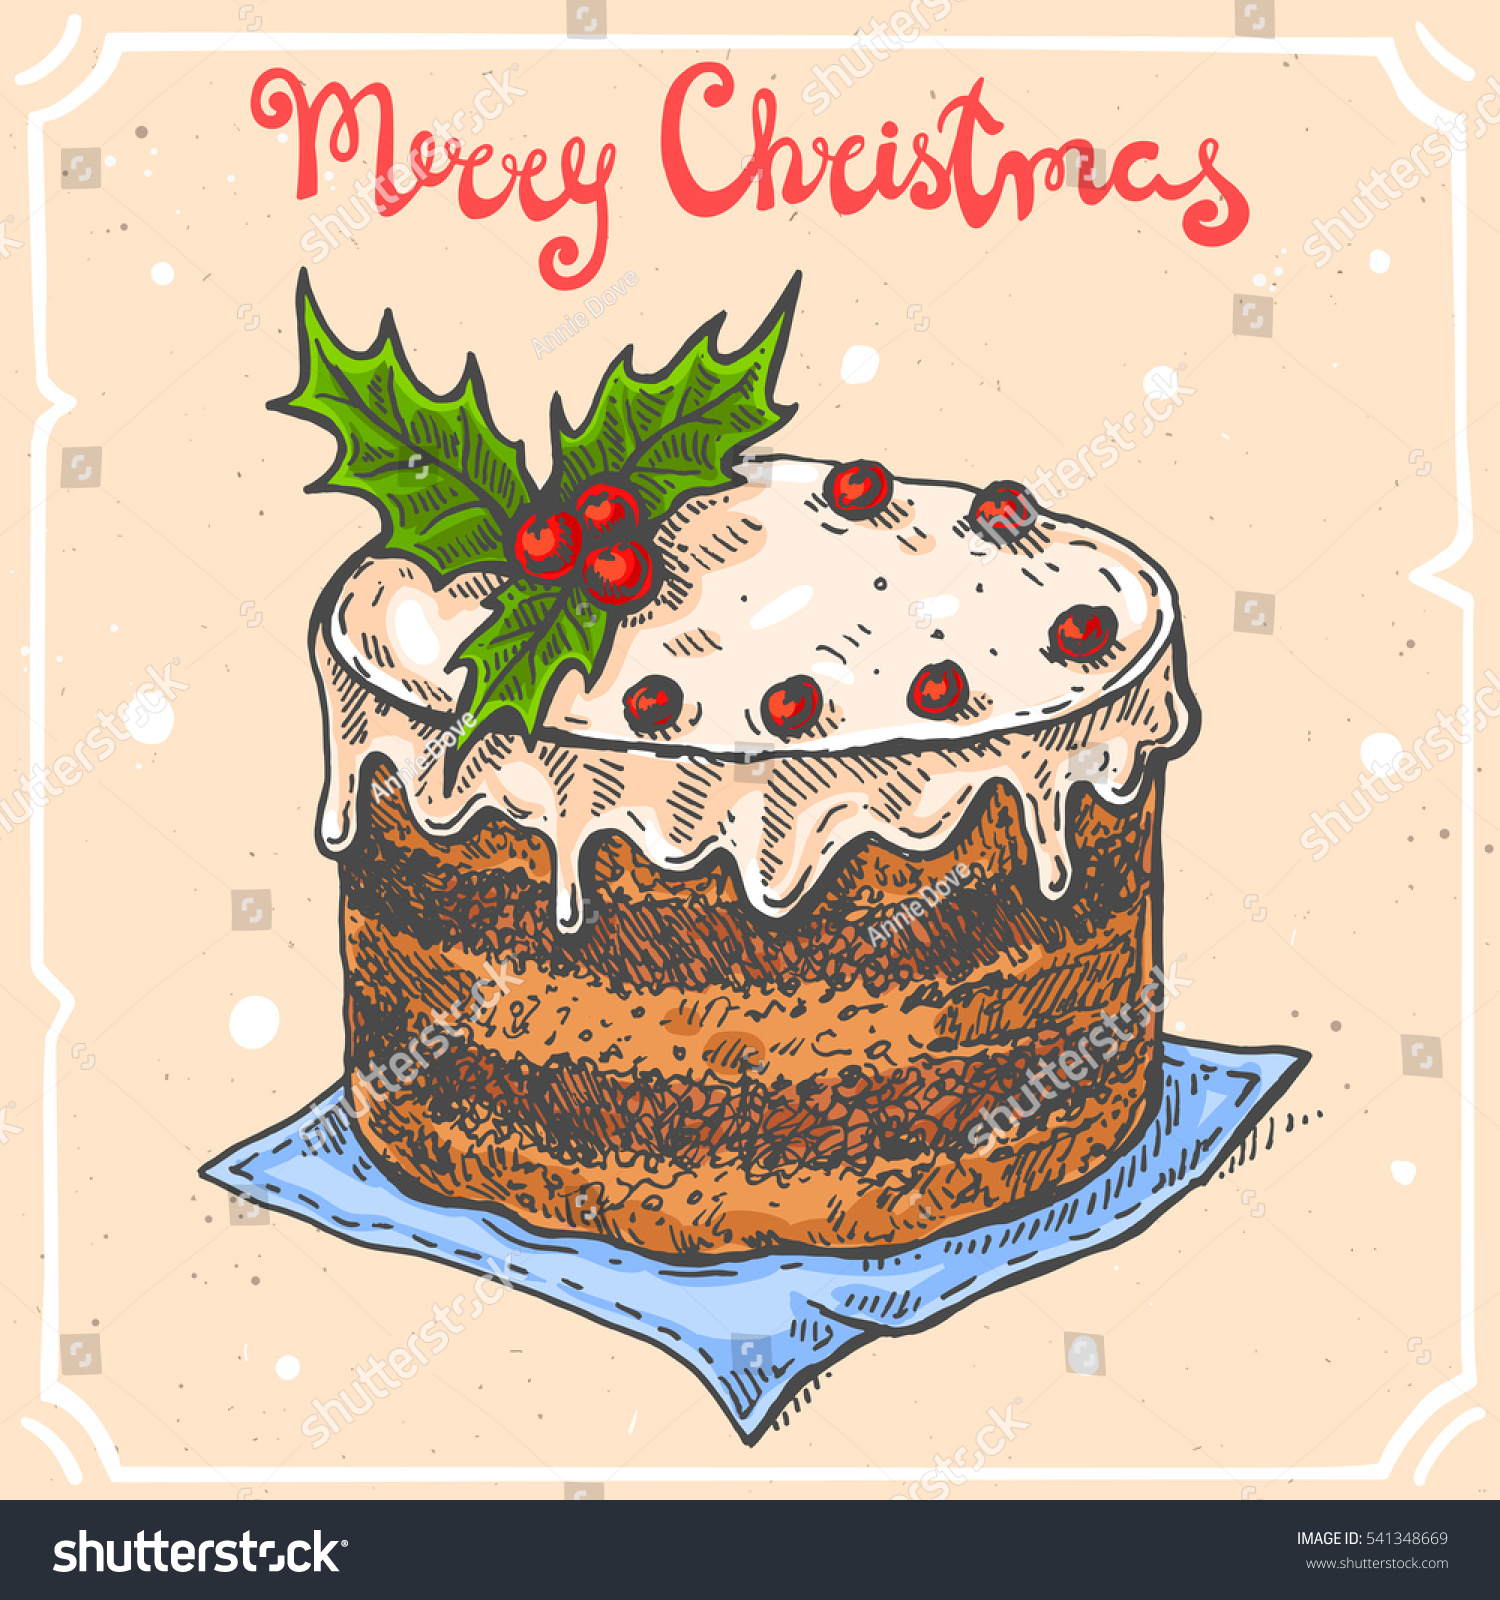 Vector Color Illustration Christmas Caketext Merry Stock Vector